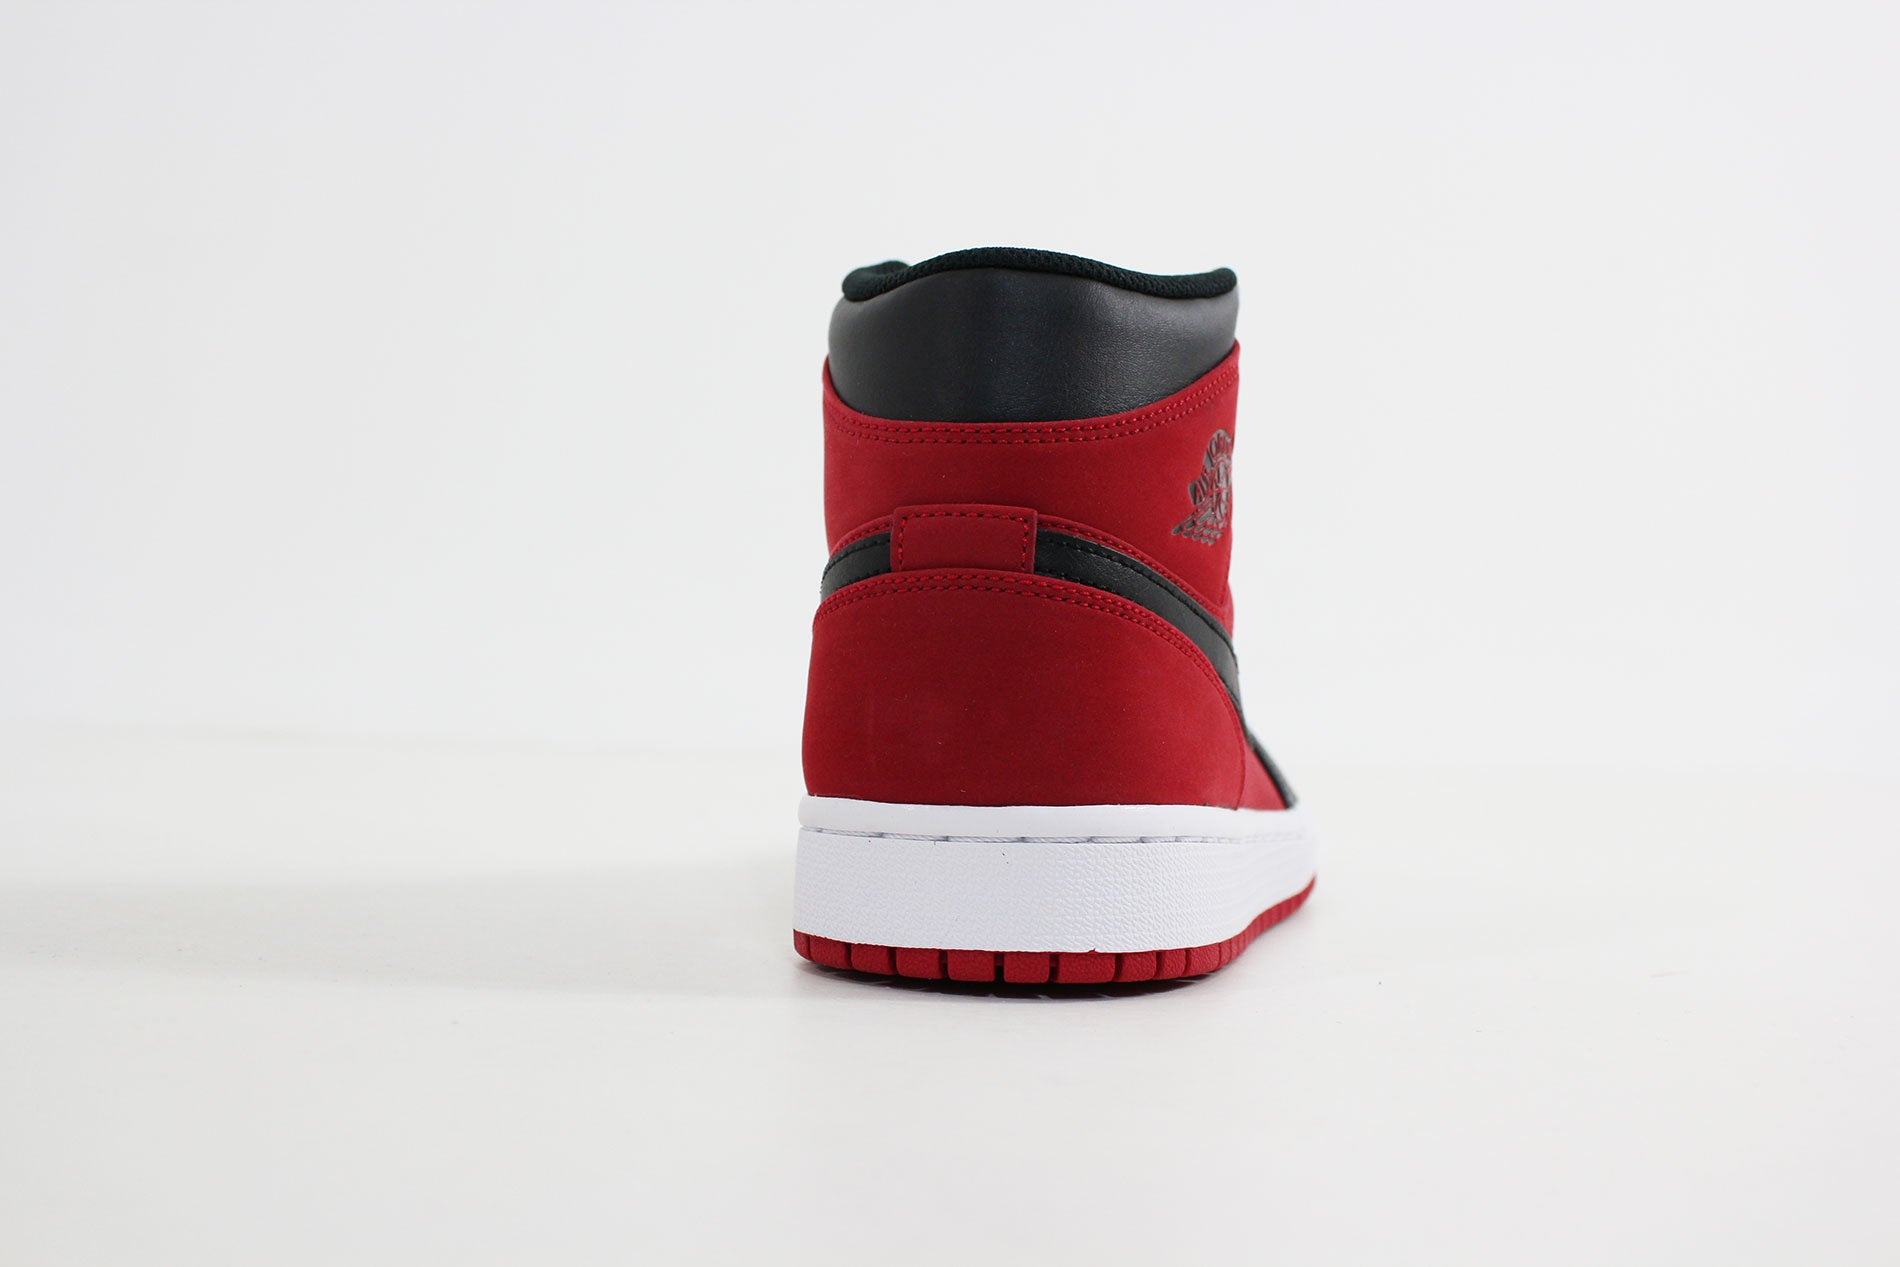 low priced e94e8 6f9ab Nike - Air Jordan 1 MID (Gym Red  Black-White) 554724-610